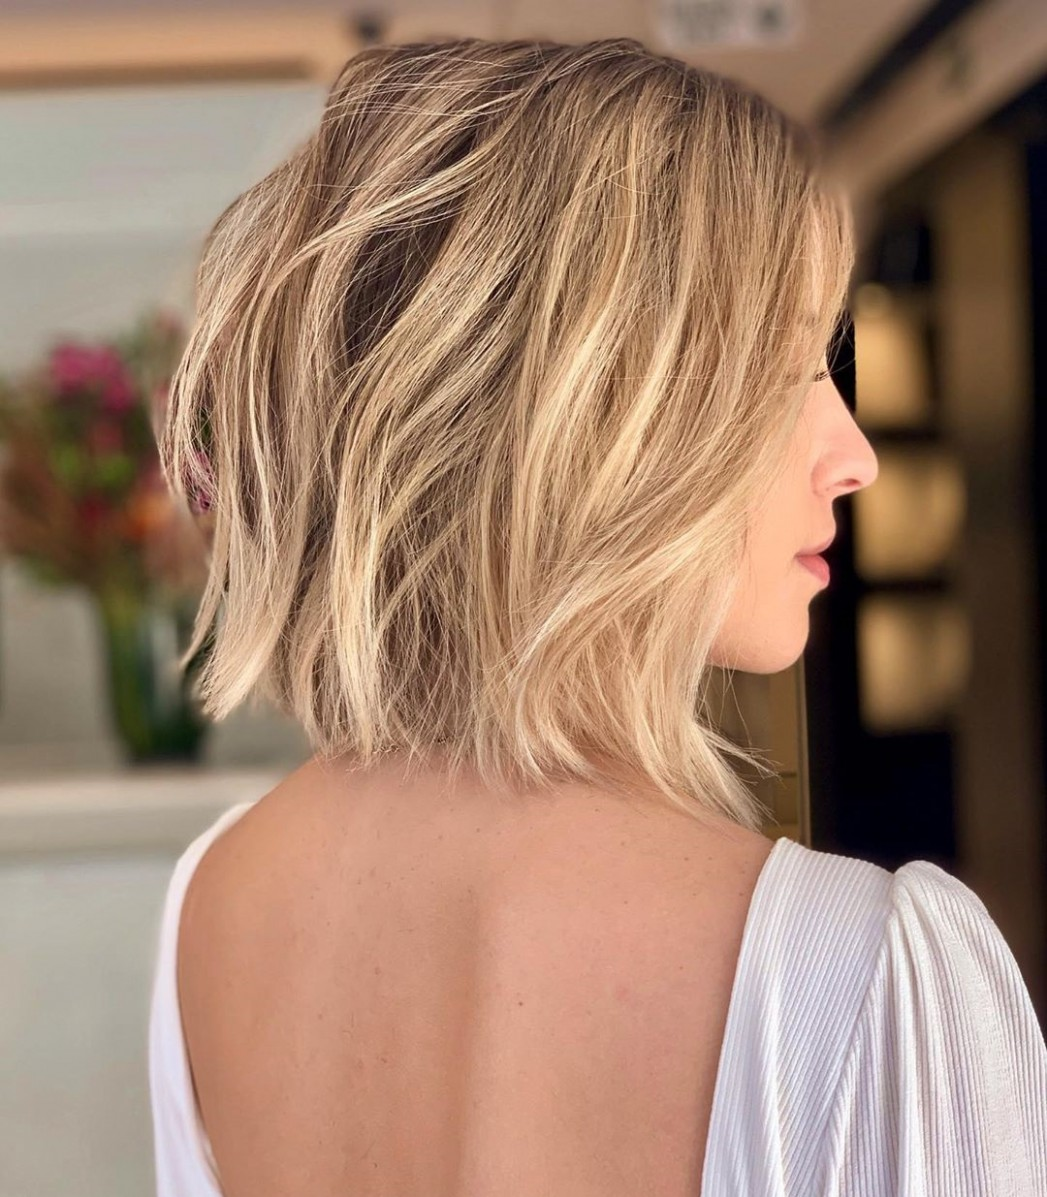 10 Blunt Cuts And Blunt Bobs That Are Dominating In 10 Hair Collarbone Length Bob